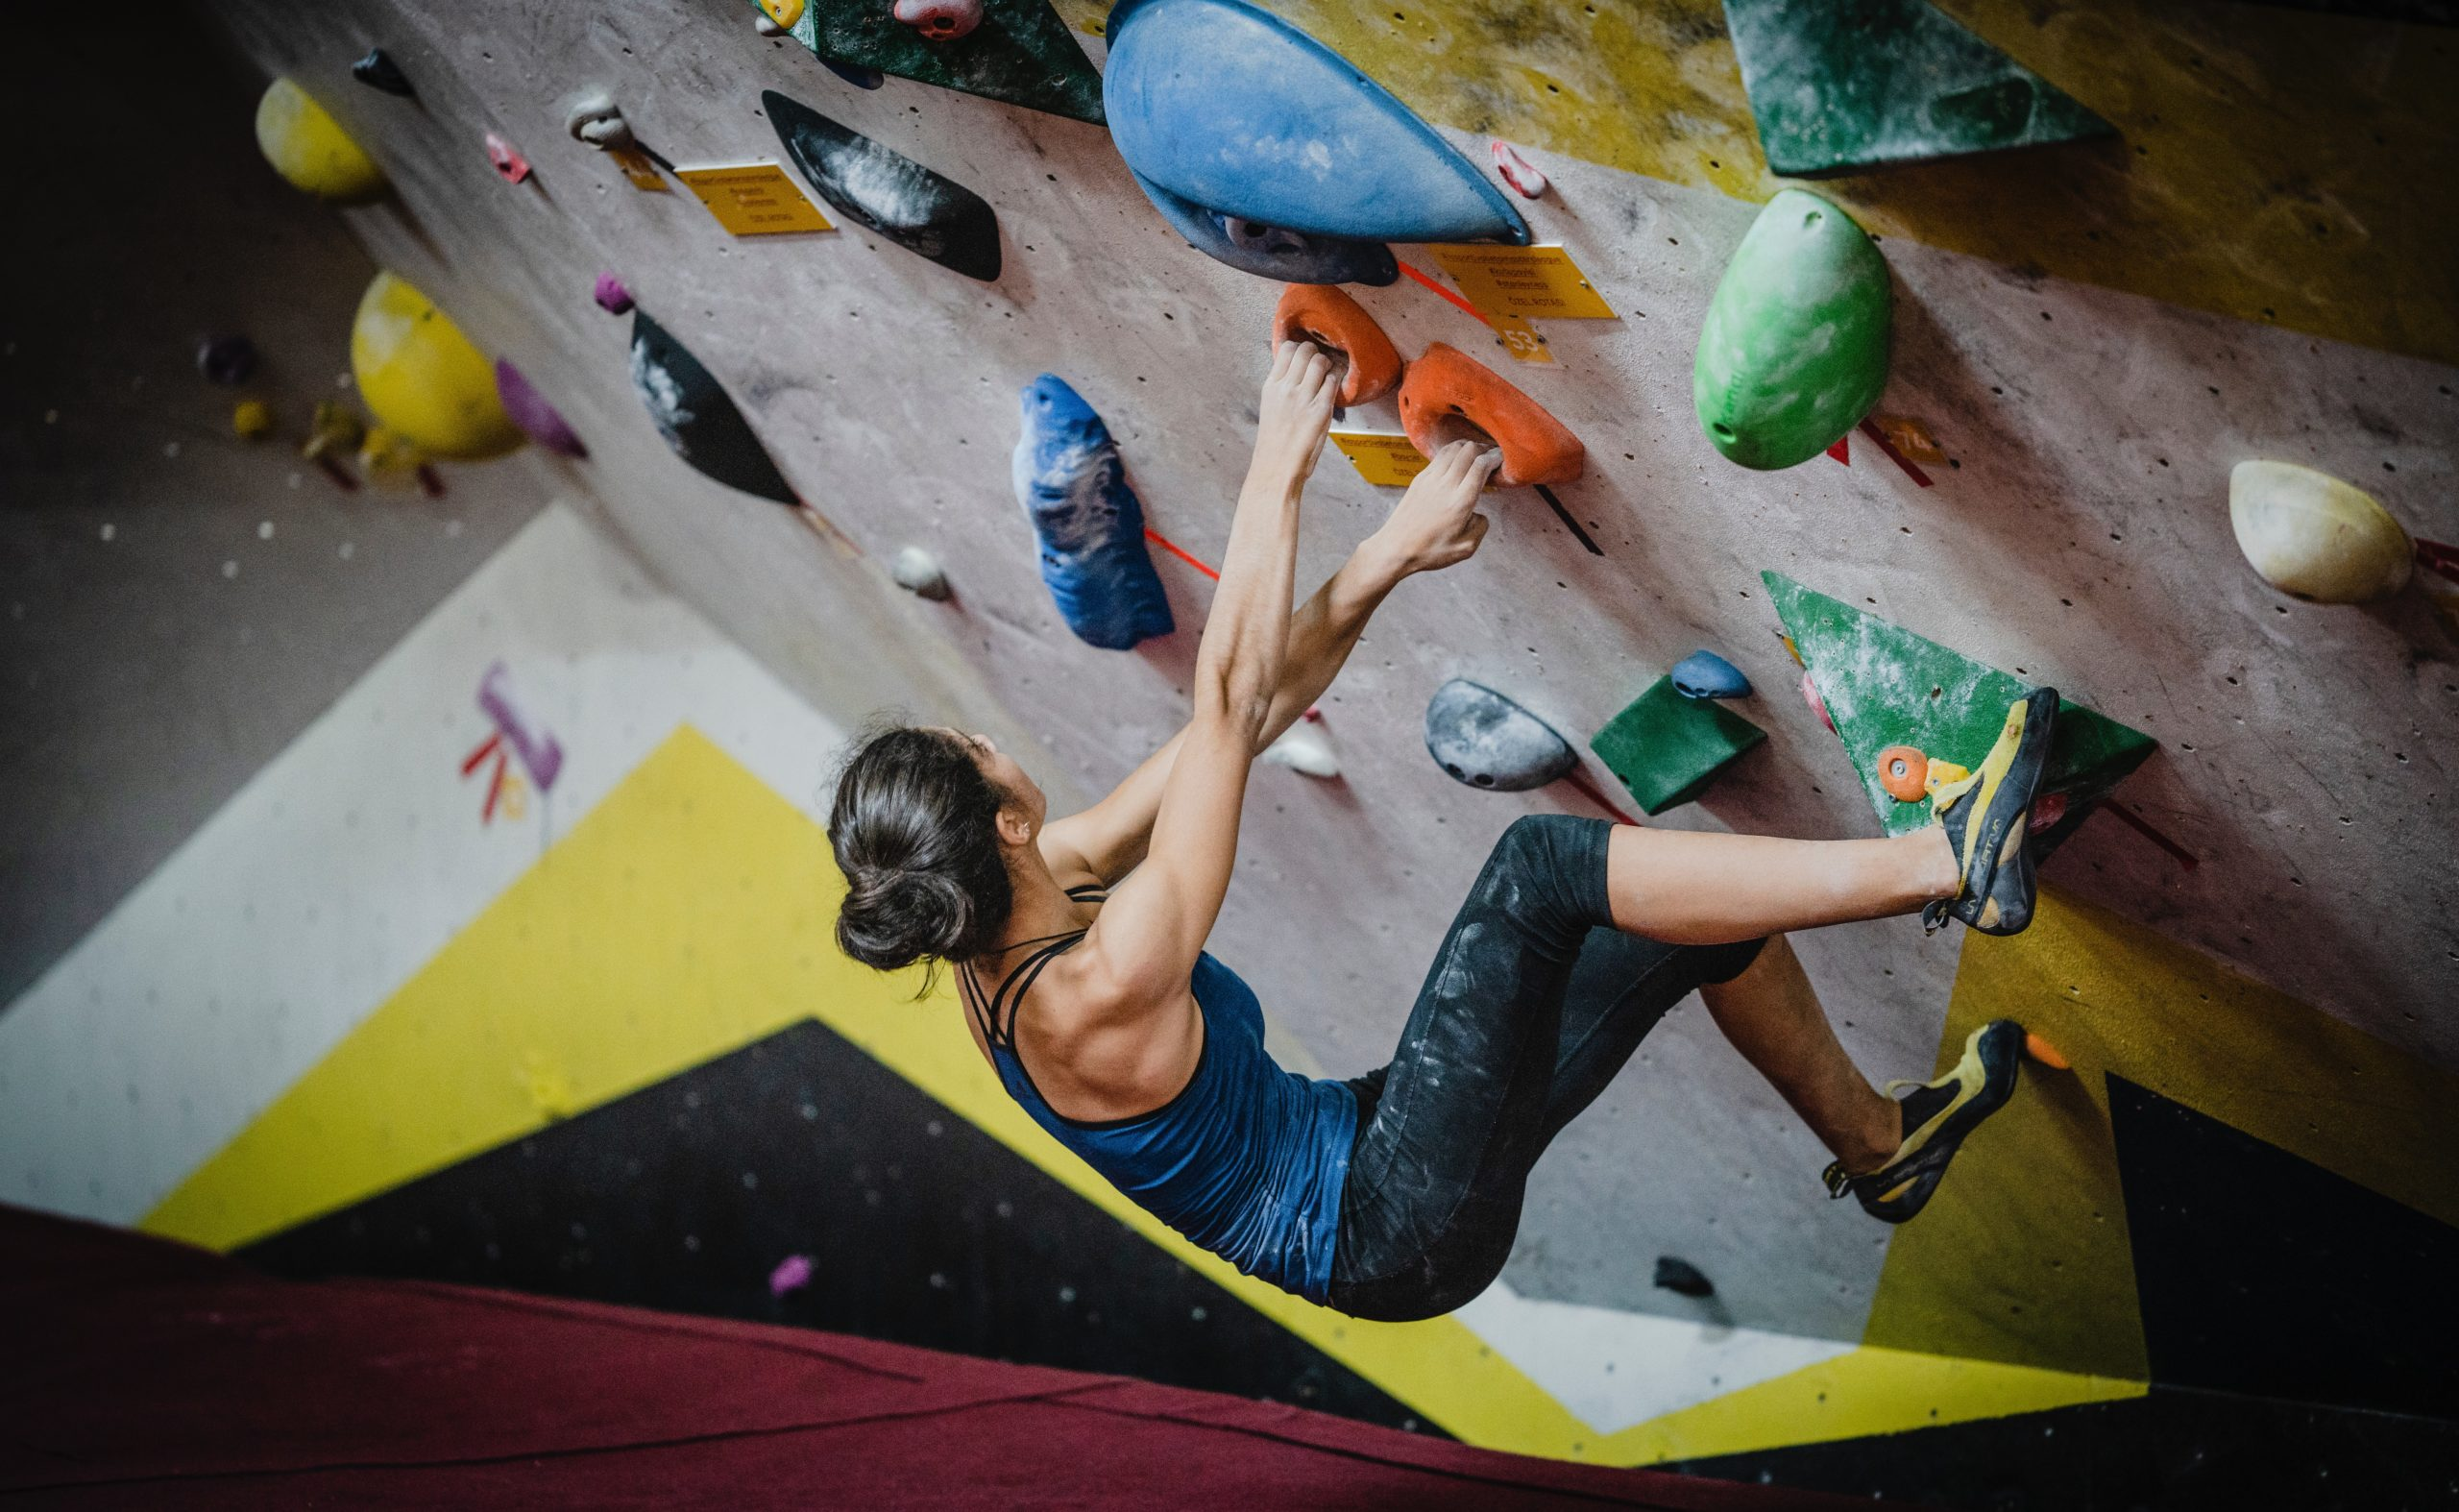 A woman bouldering inside at a gym